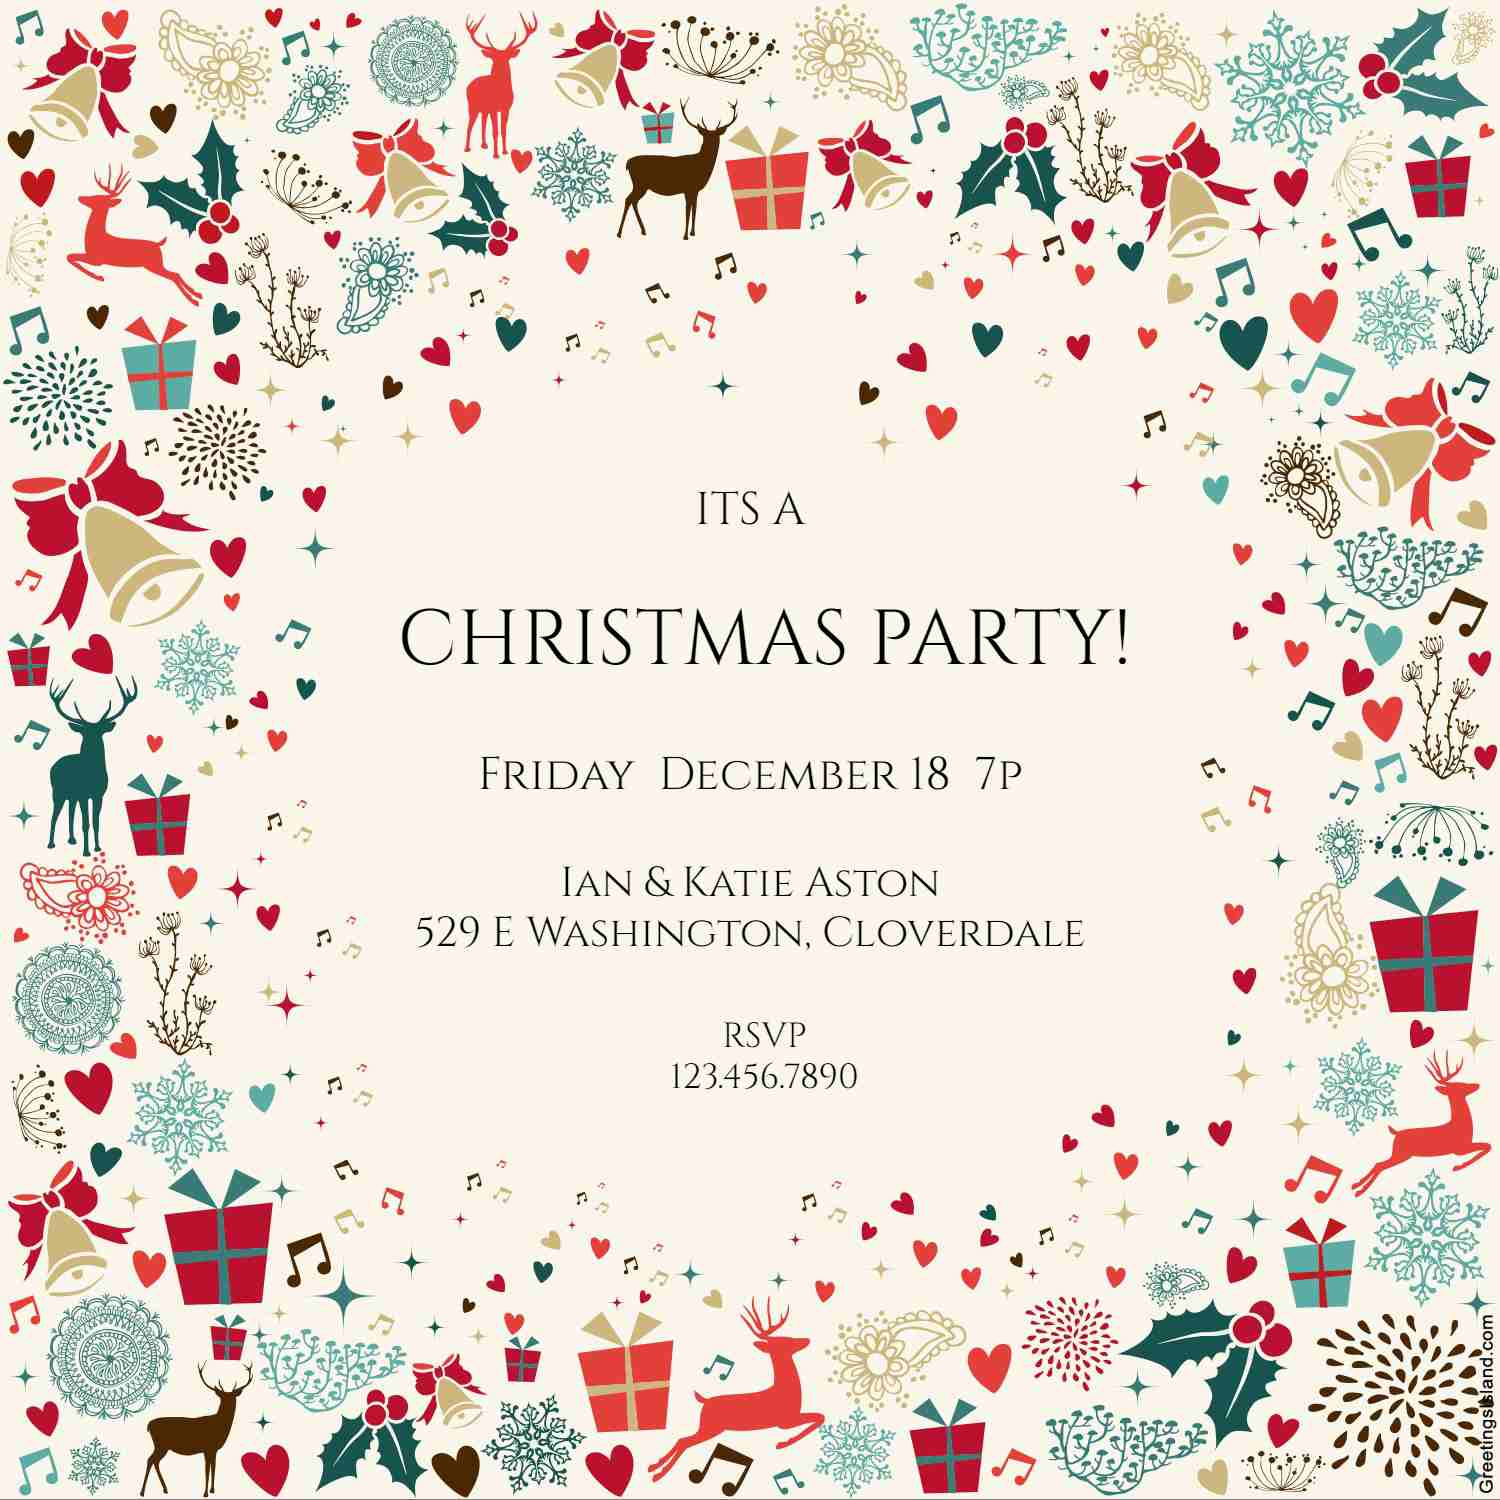 10 Free Christmas Party Invitations That You Can Print - Free Printable Christmas Invitations